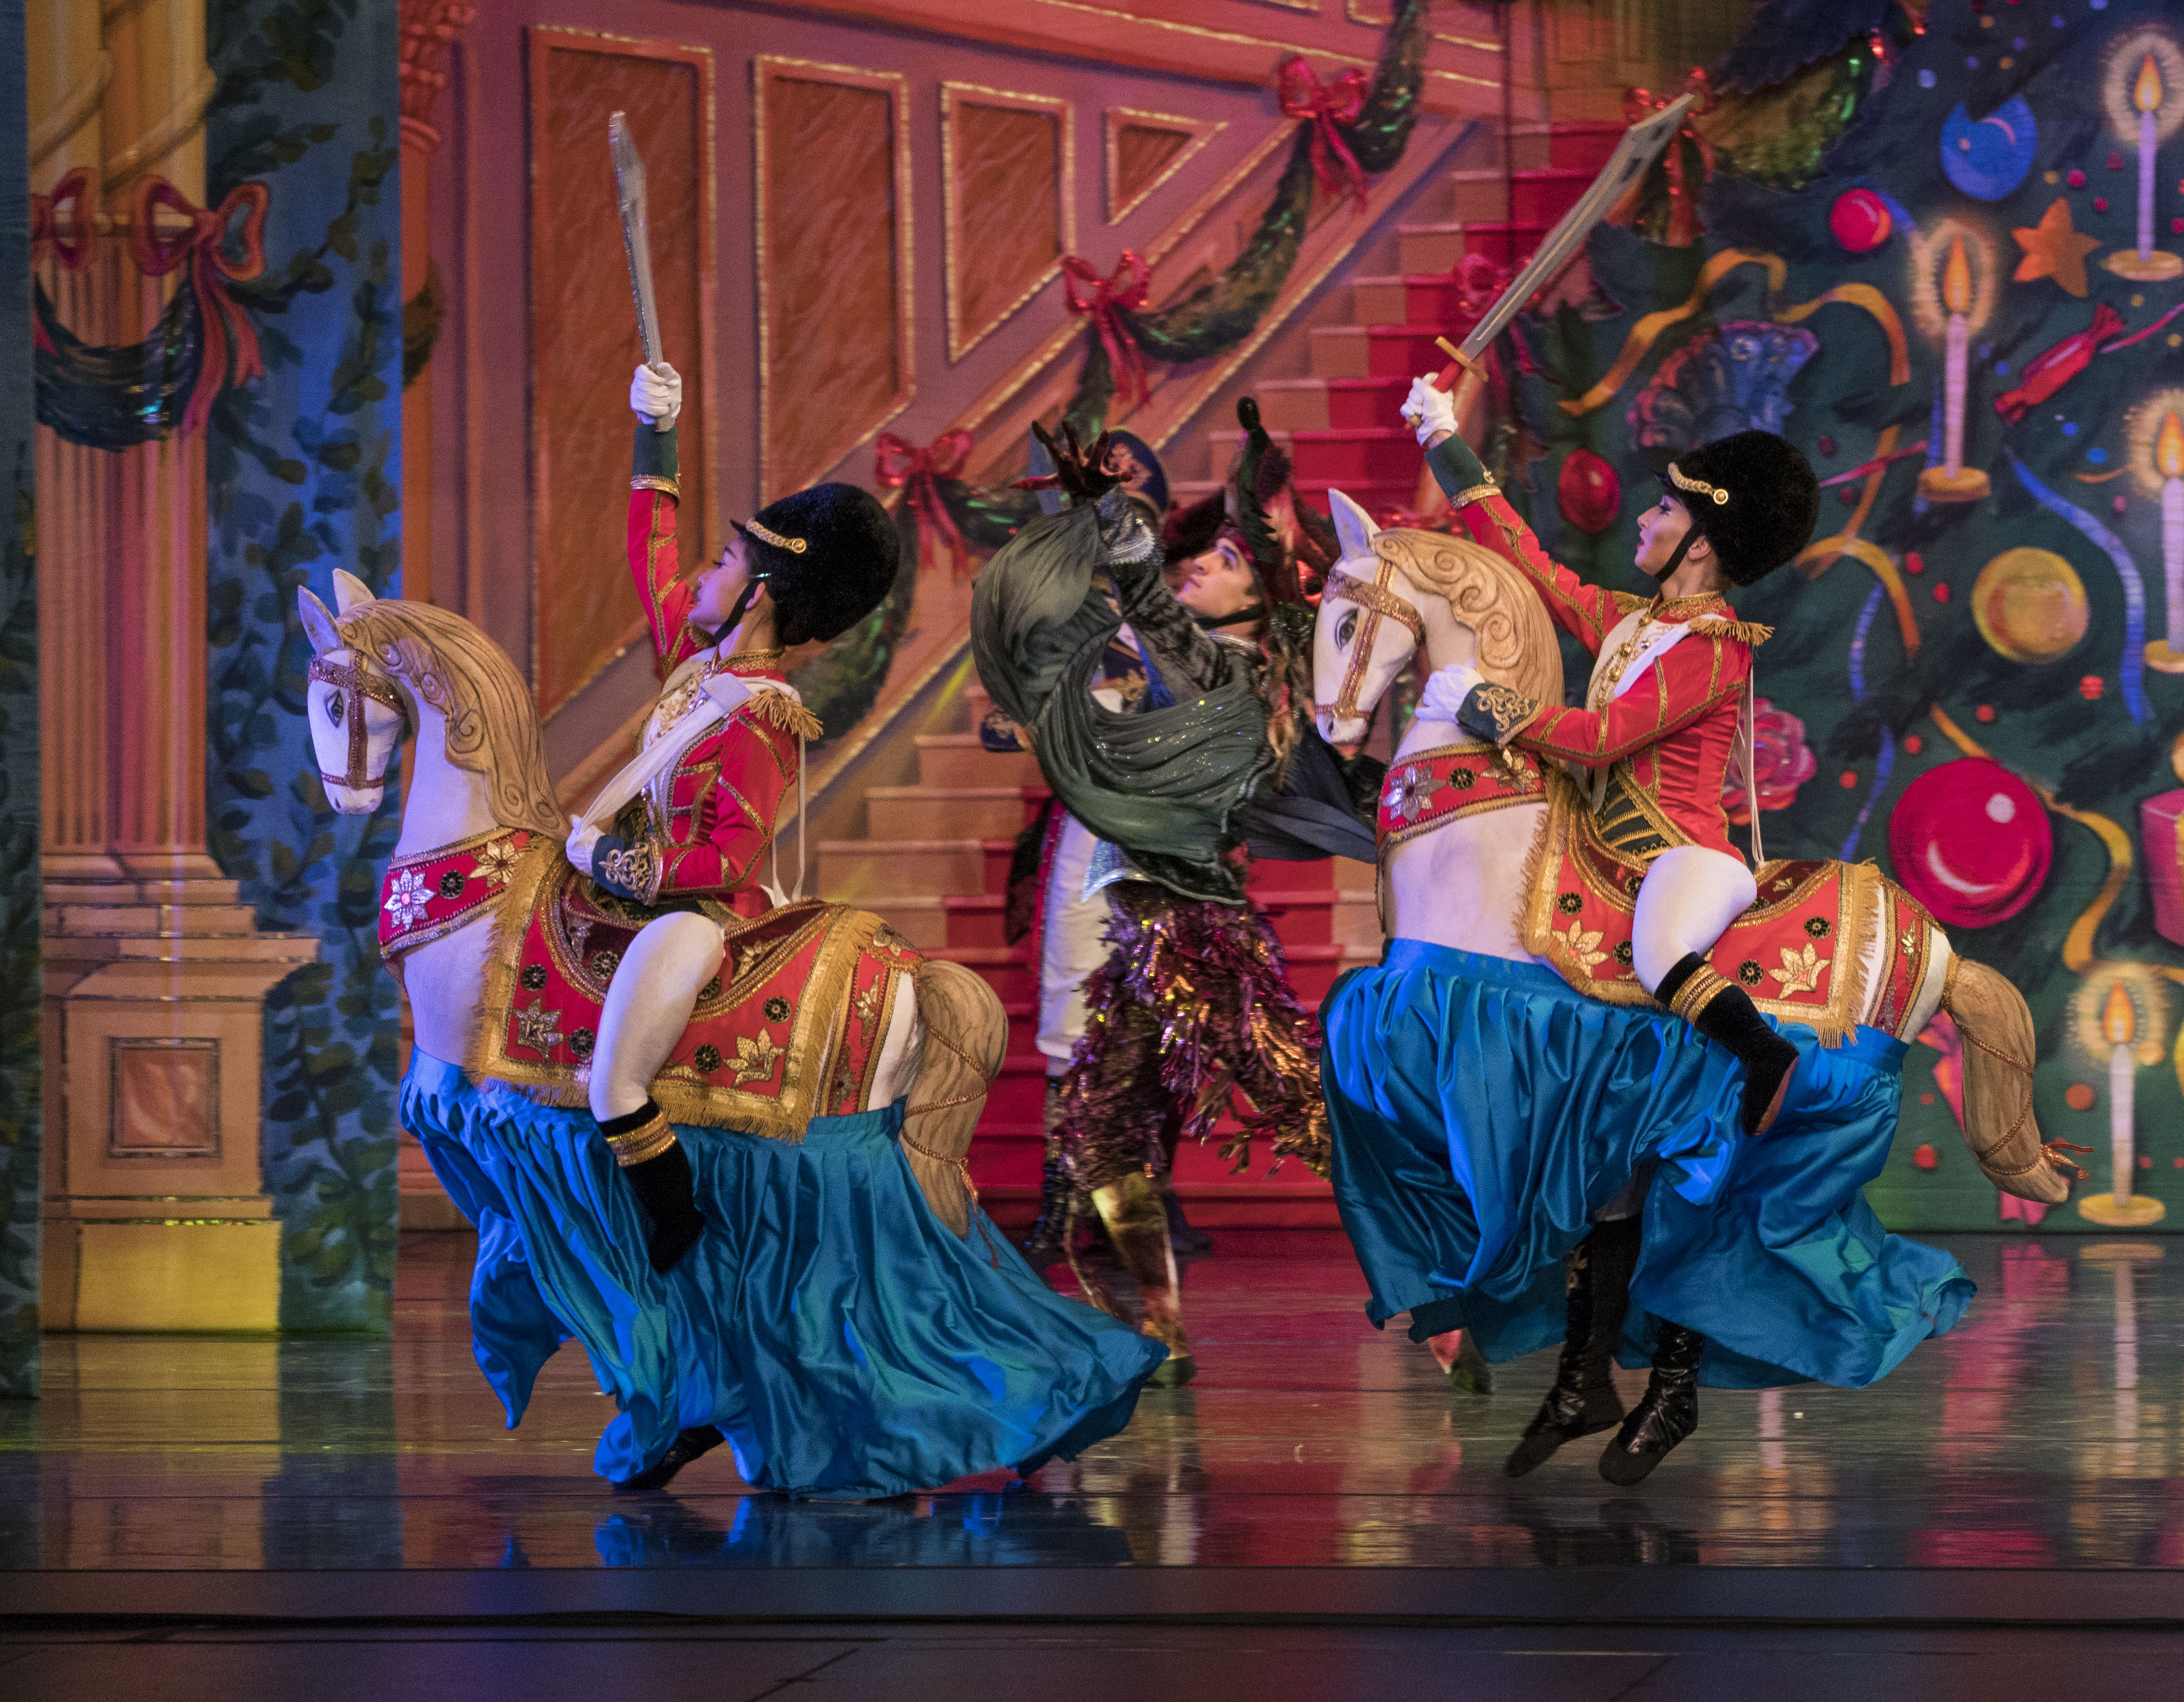 7 Moscow Ballet Cavalry in the Great Russian Nutcracker